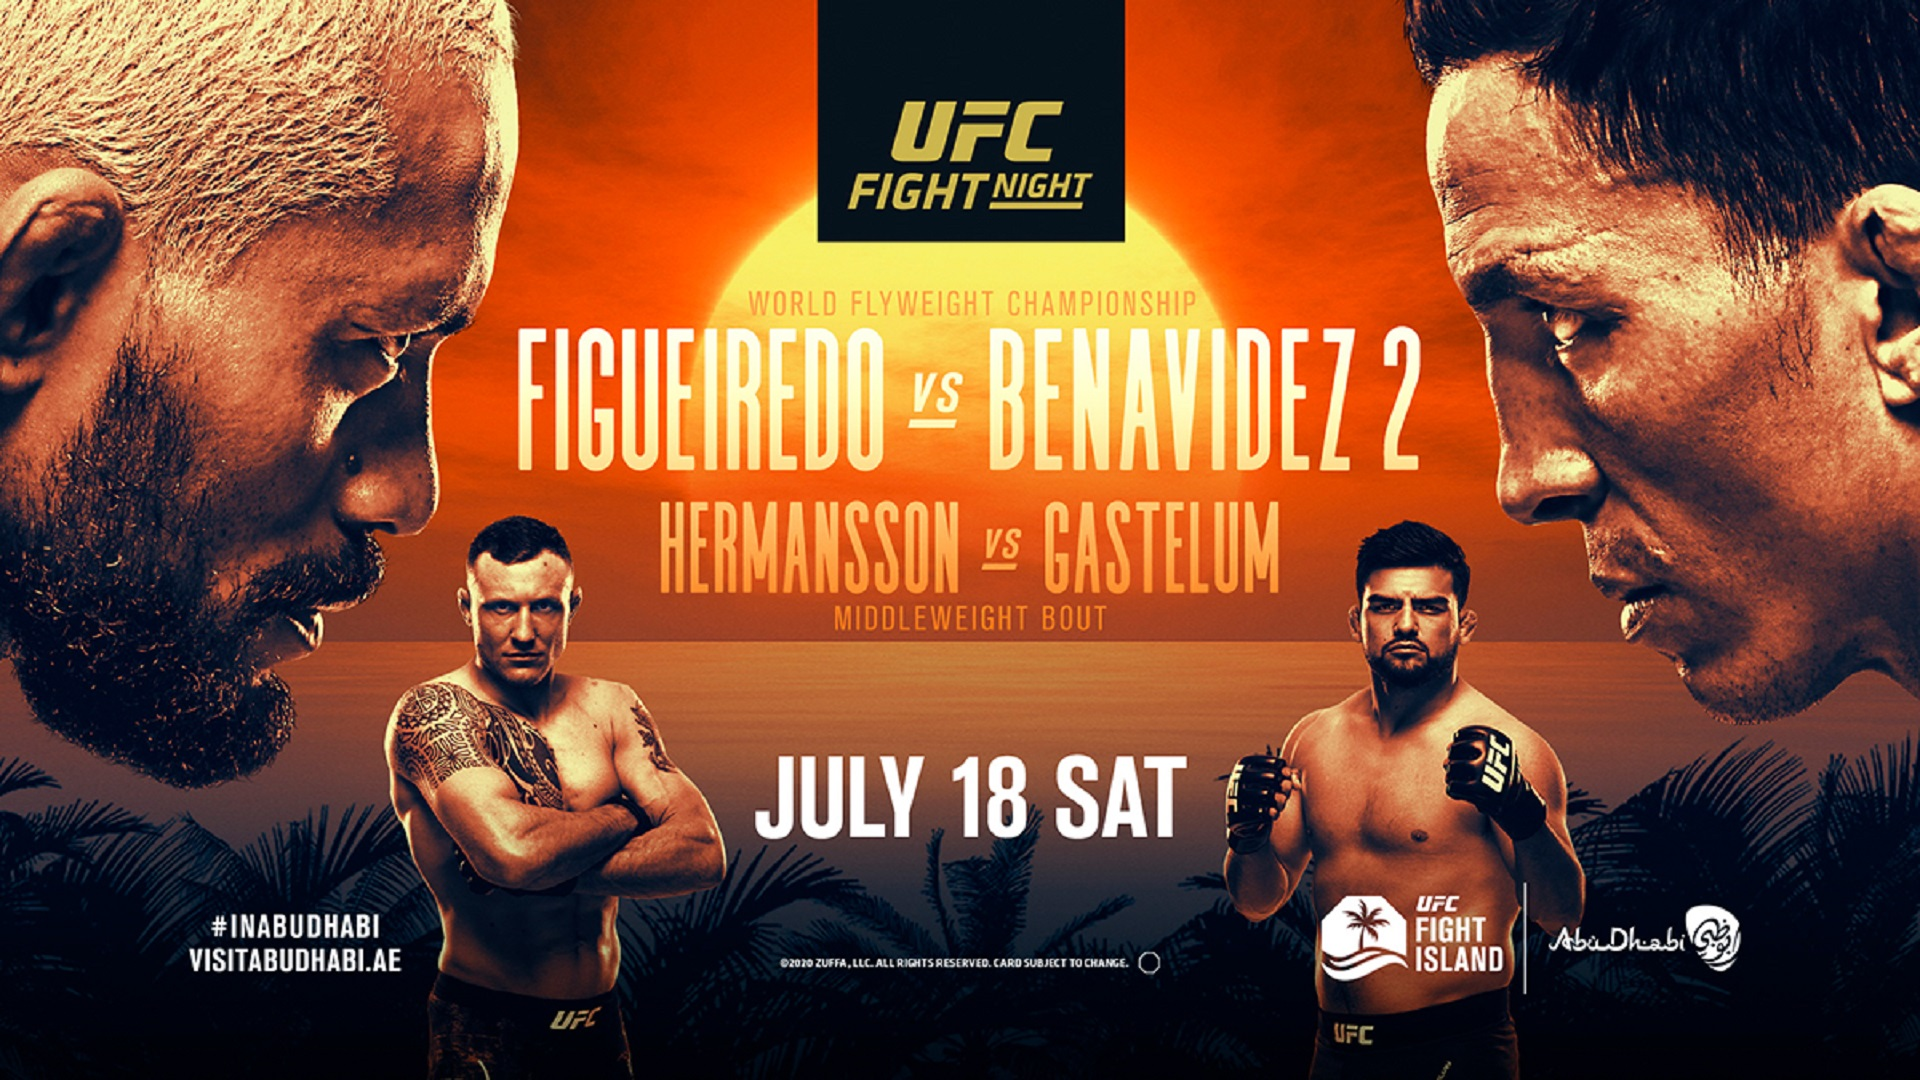 UFC-Fight-Night-Figueiredo-vs-Benavidez-2